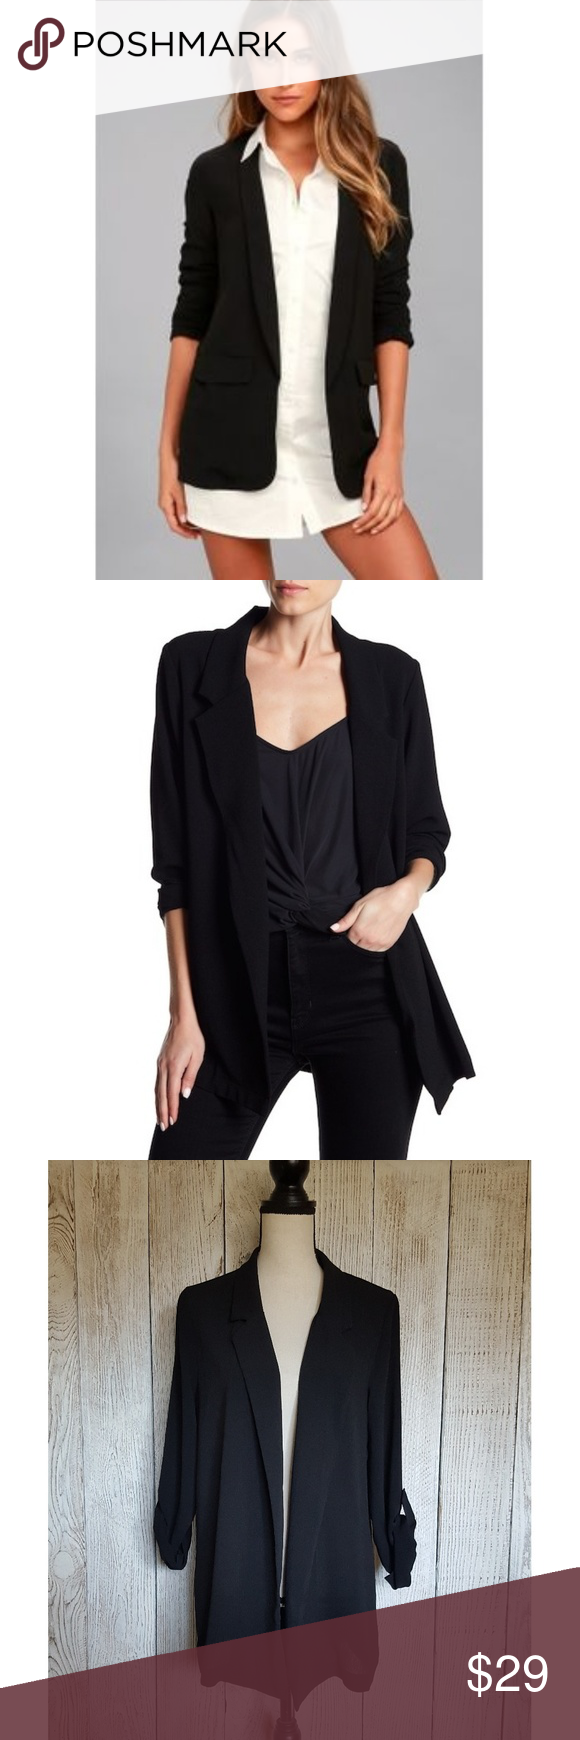 separation shoes 2d779 fde45 Lush Novak Crepe Blazer in Black   Small A simple and classic lightweight crepe  Novak blazer that is a great timeless addition to your wardrobe.